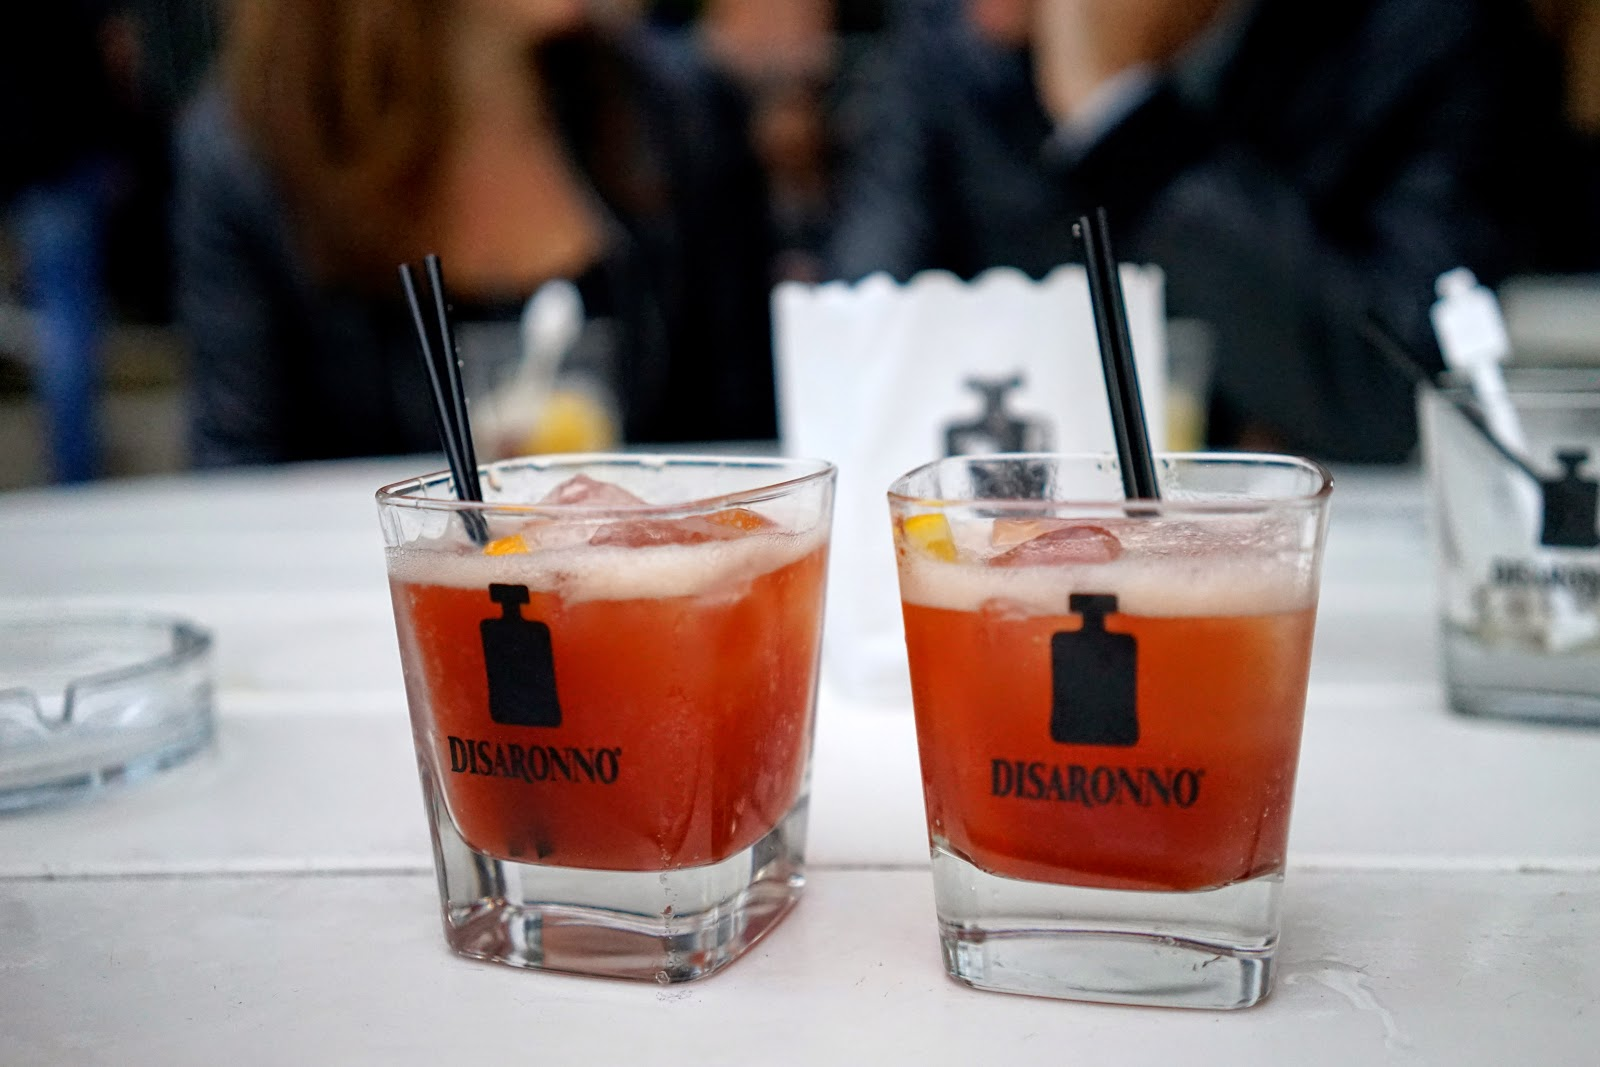 Disaronno strawberry